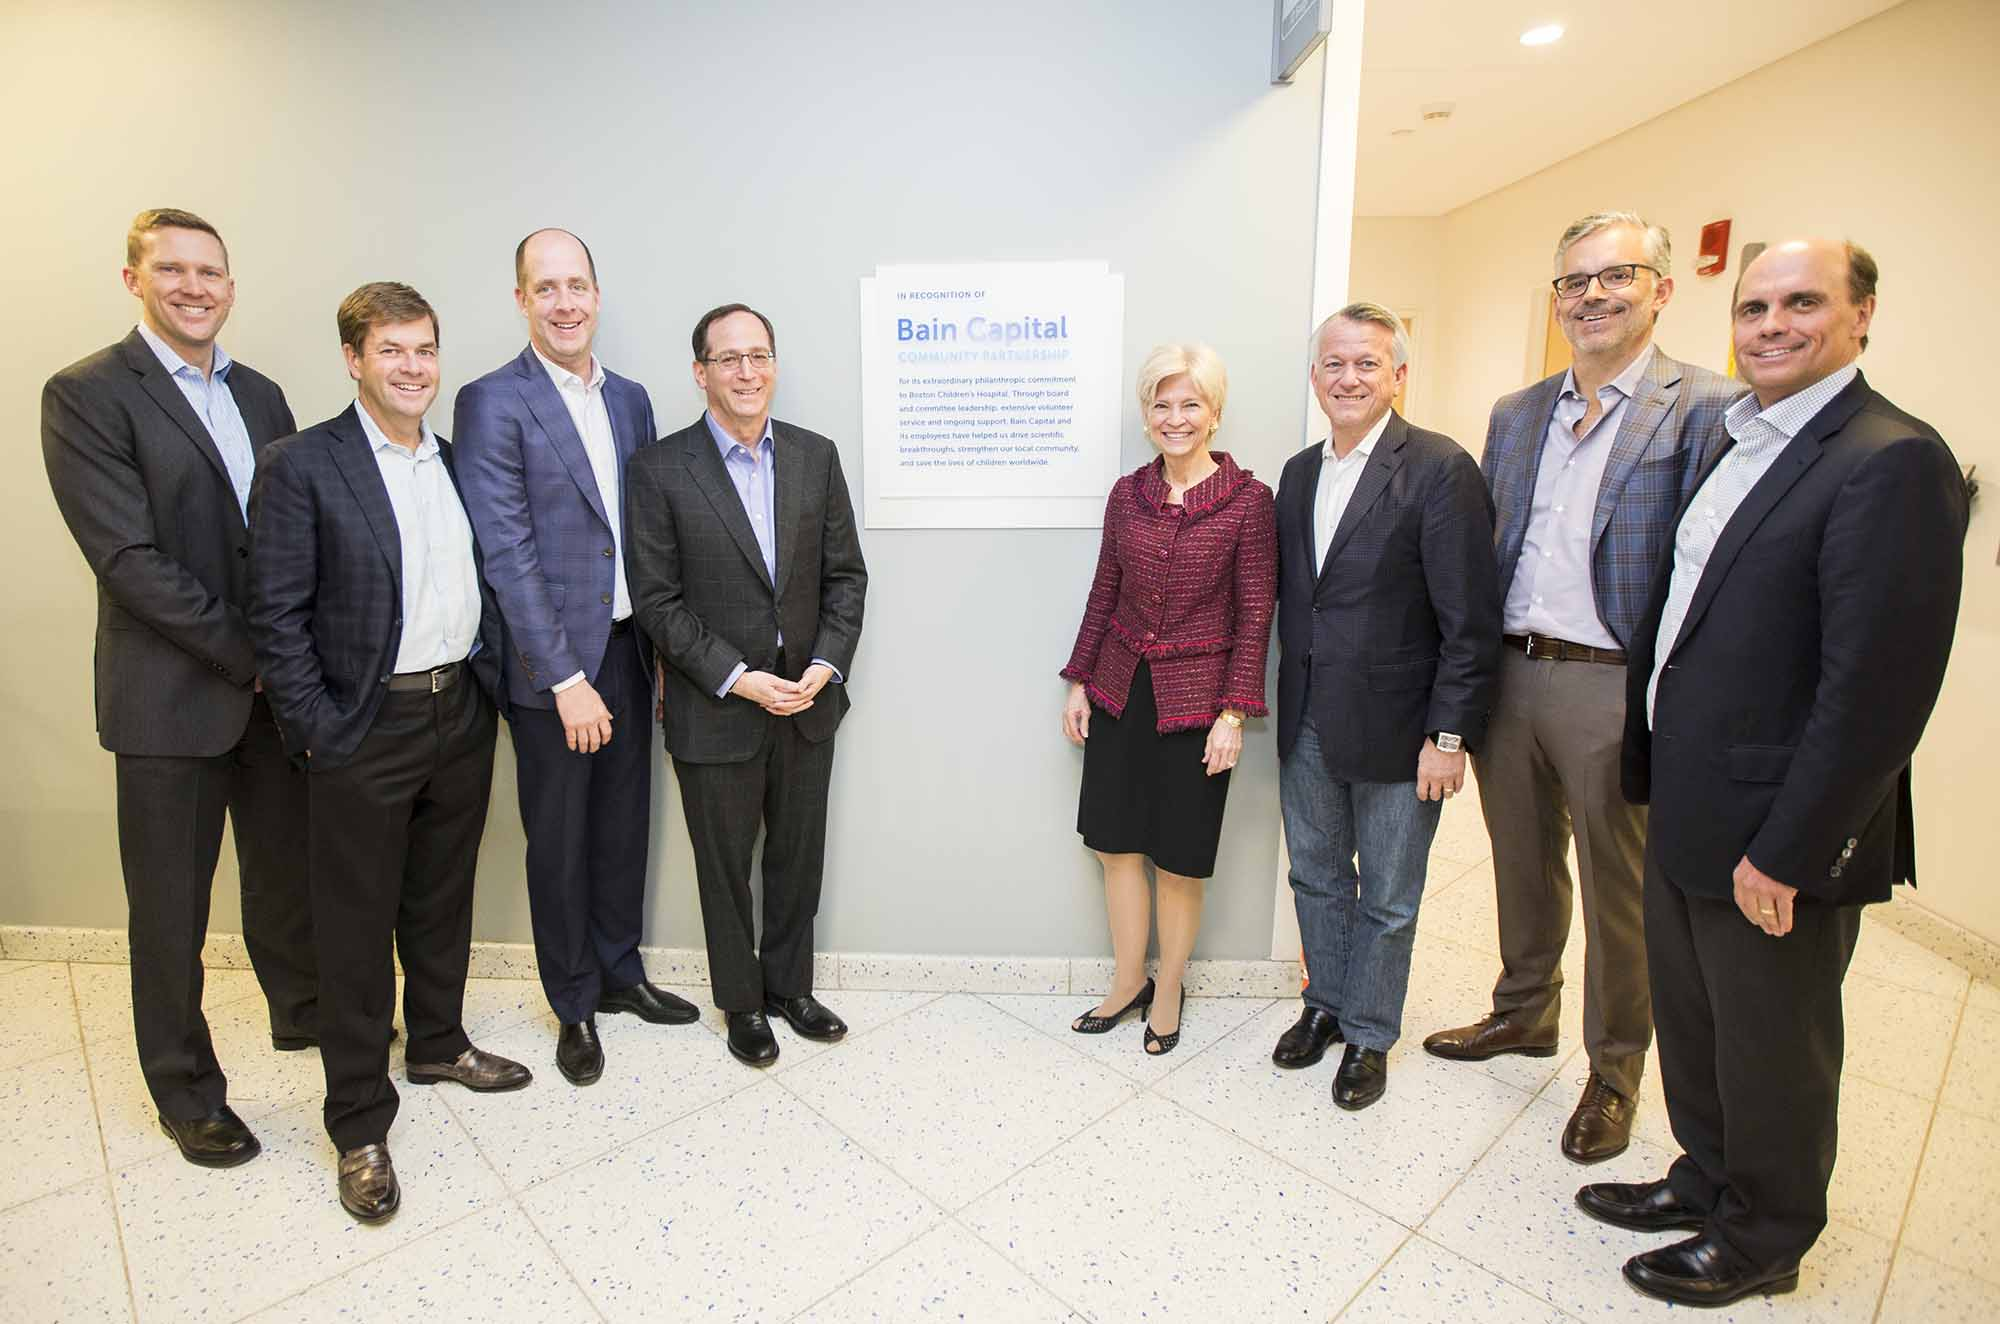 Boston Children's Hospital and Bain Capital Celebrate Their Partnership